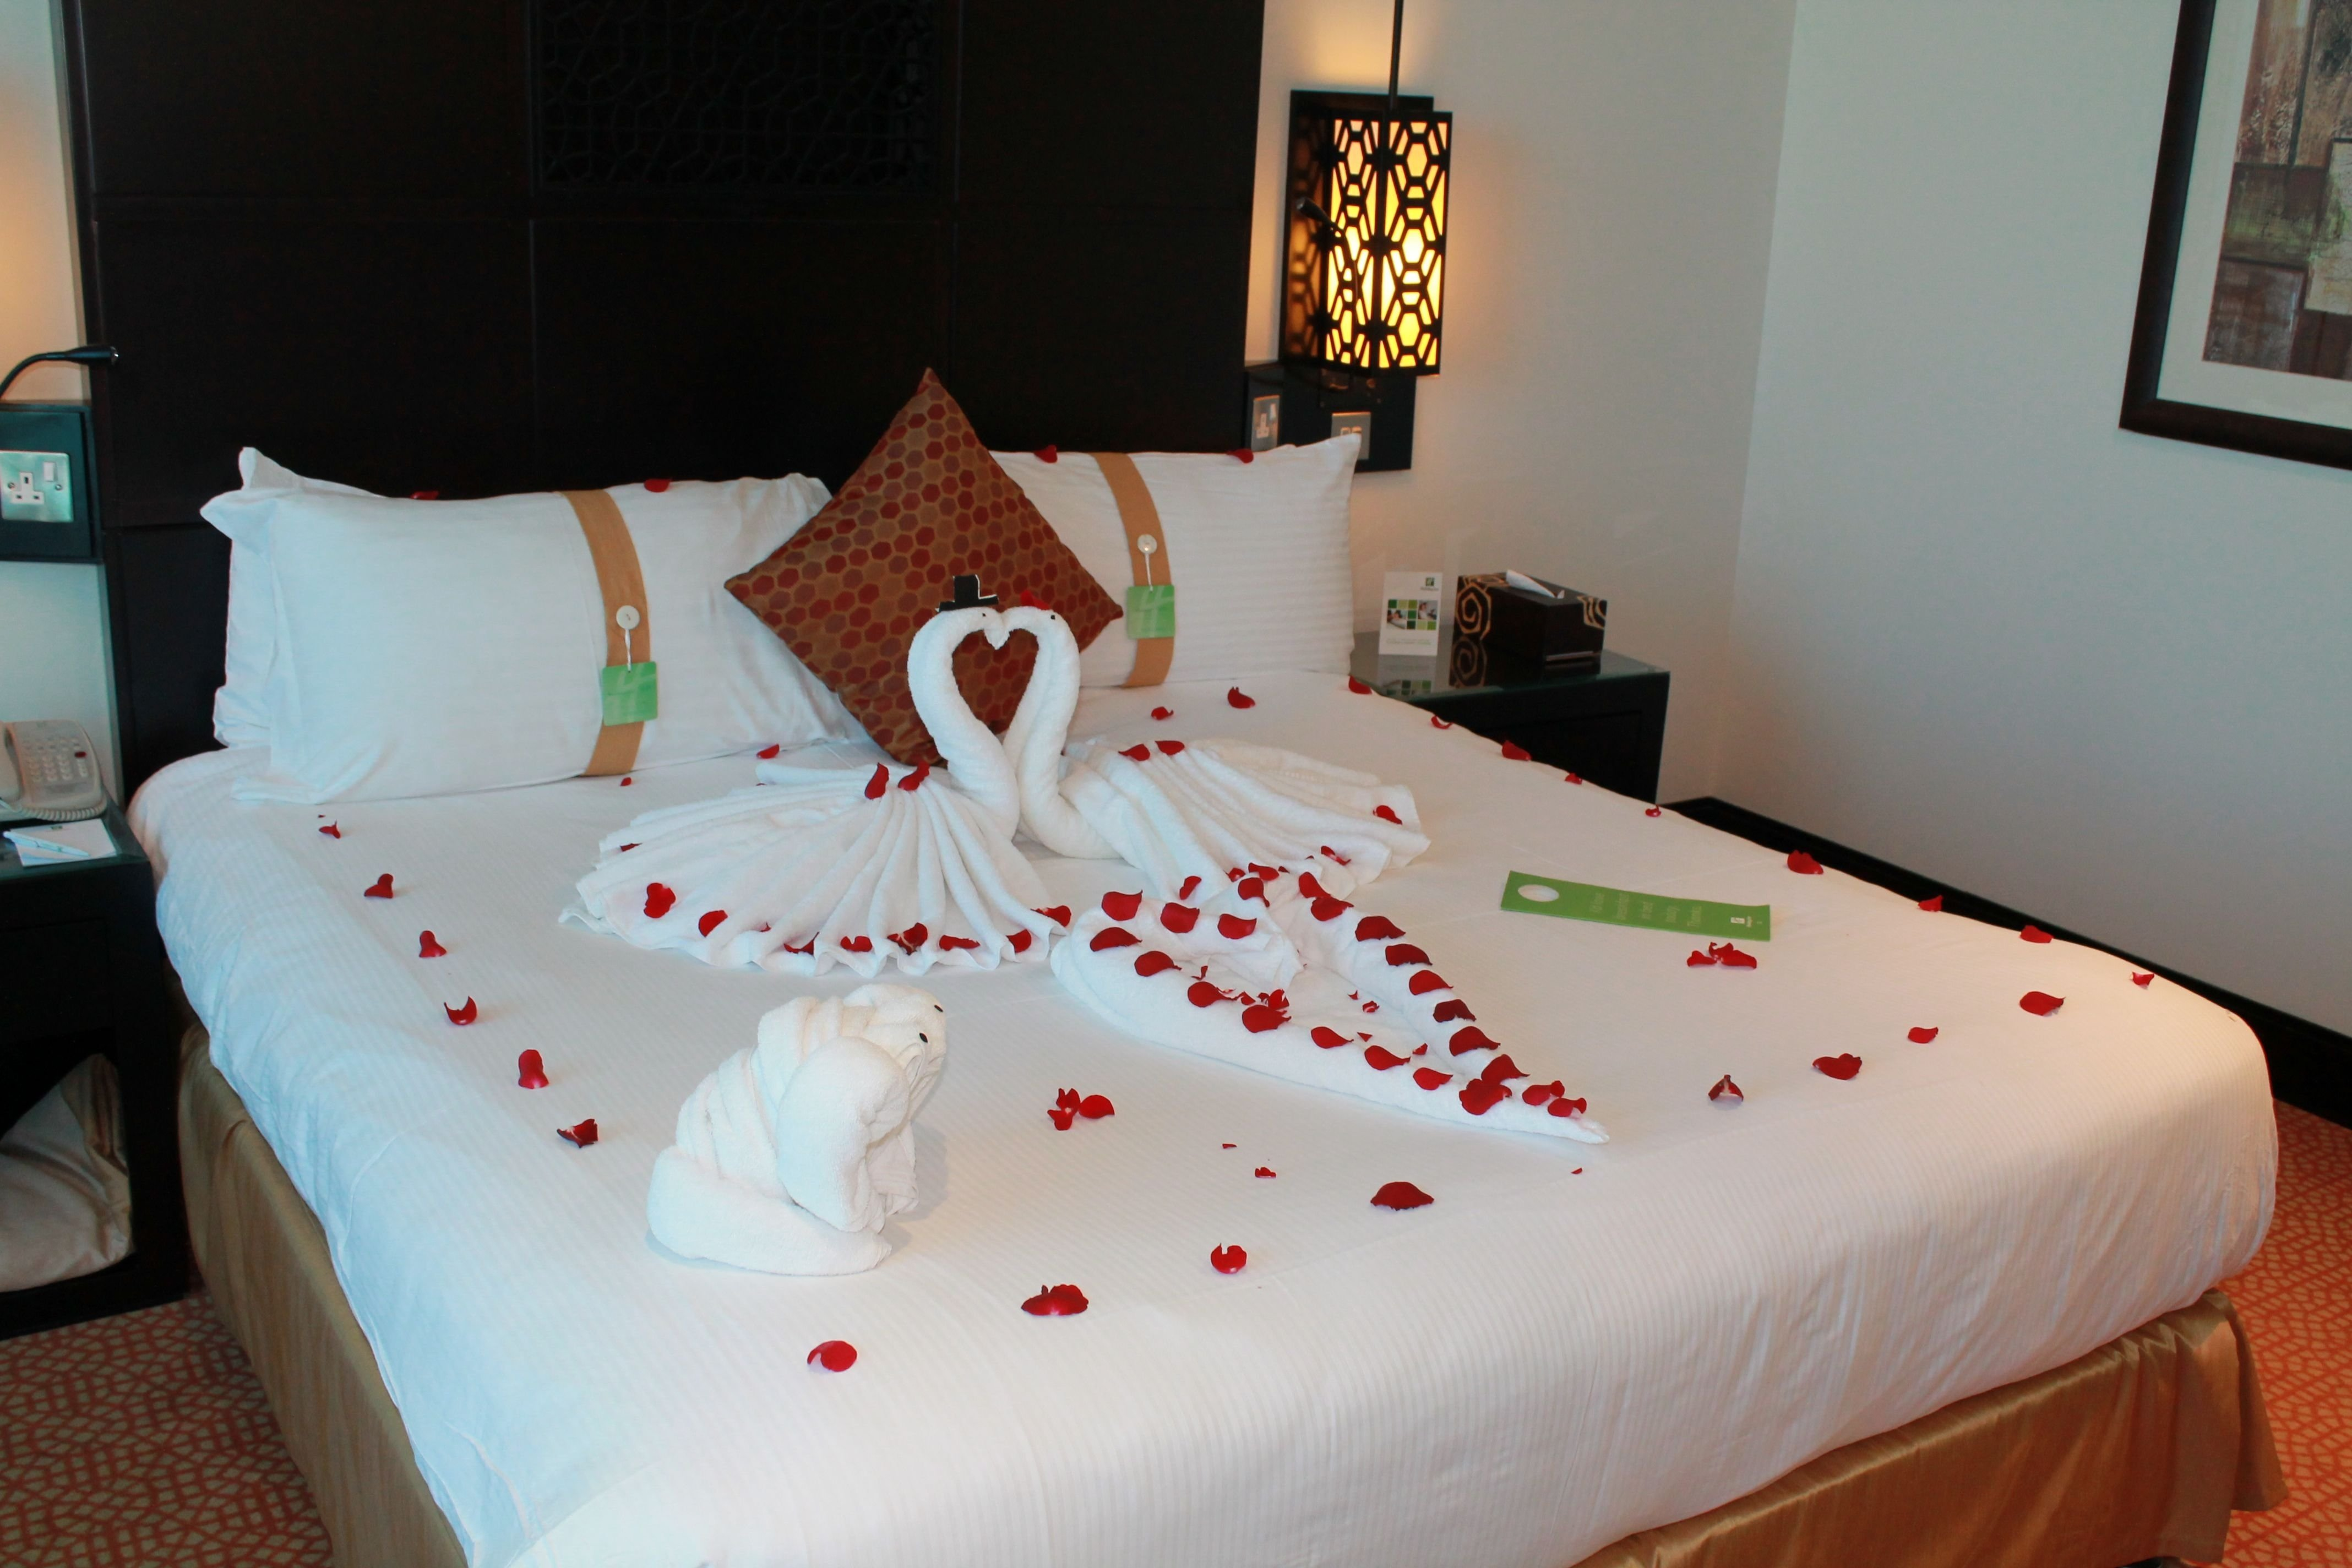 10 Most Popular Romantic Ideas For Him In A Hotel tips for a romantic hotel room makeover romantic hotels 2020